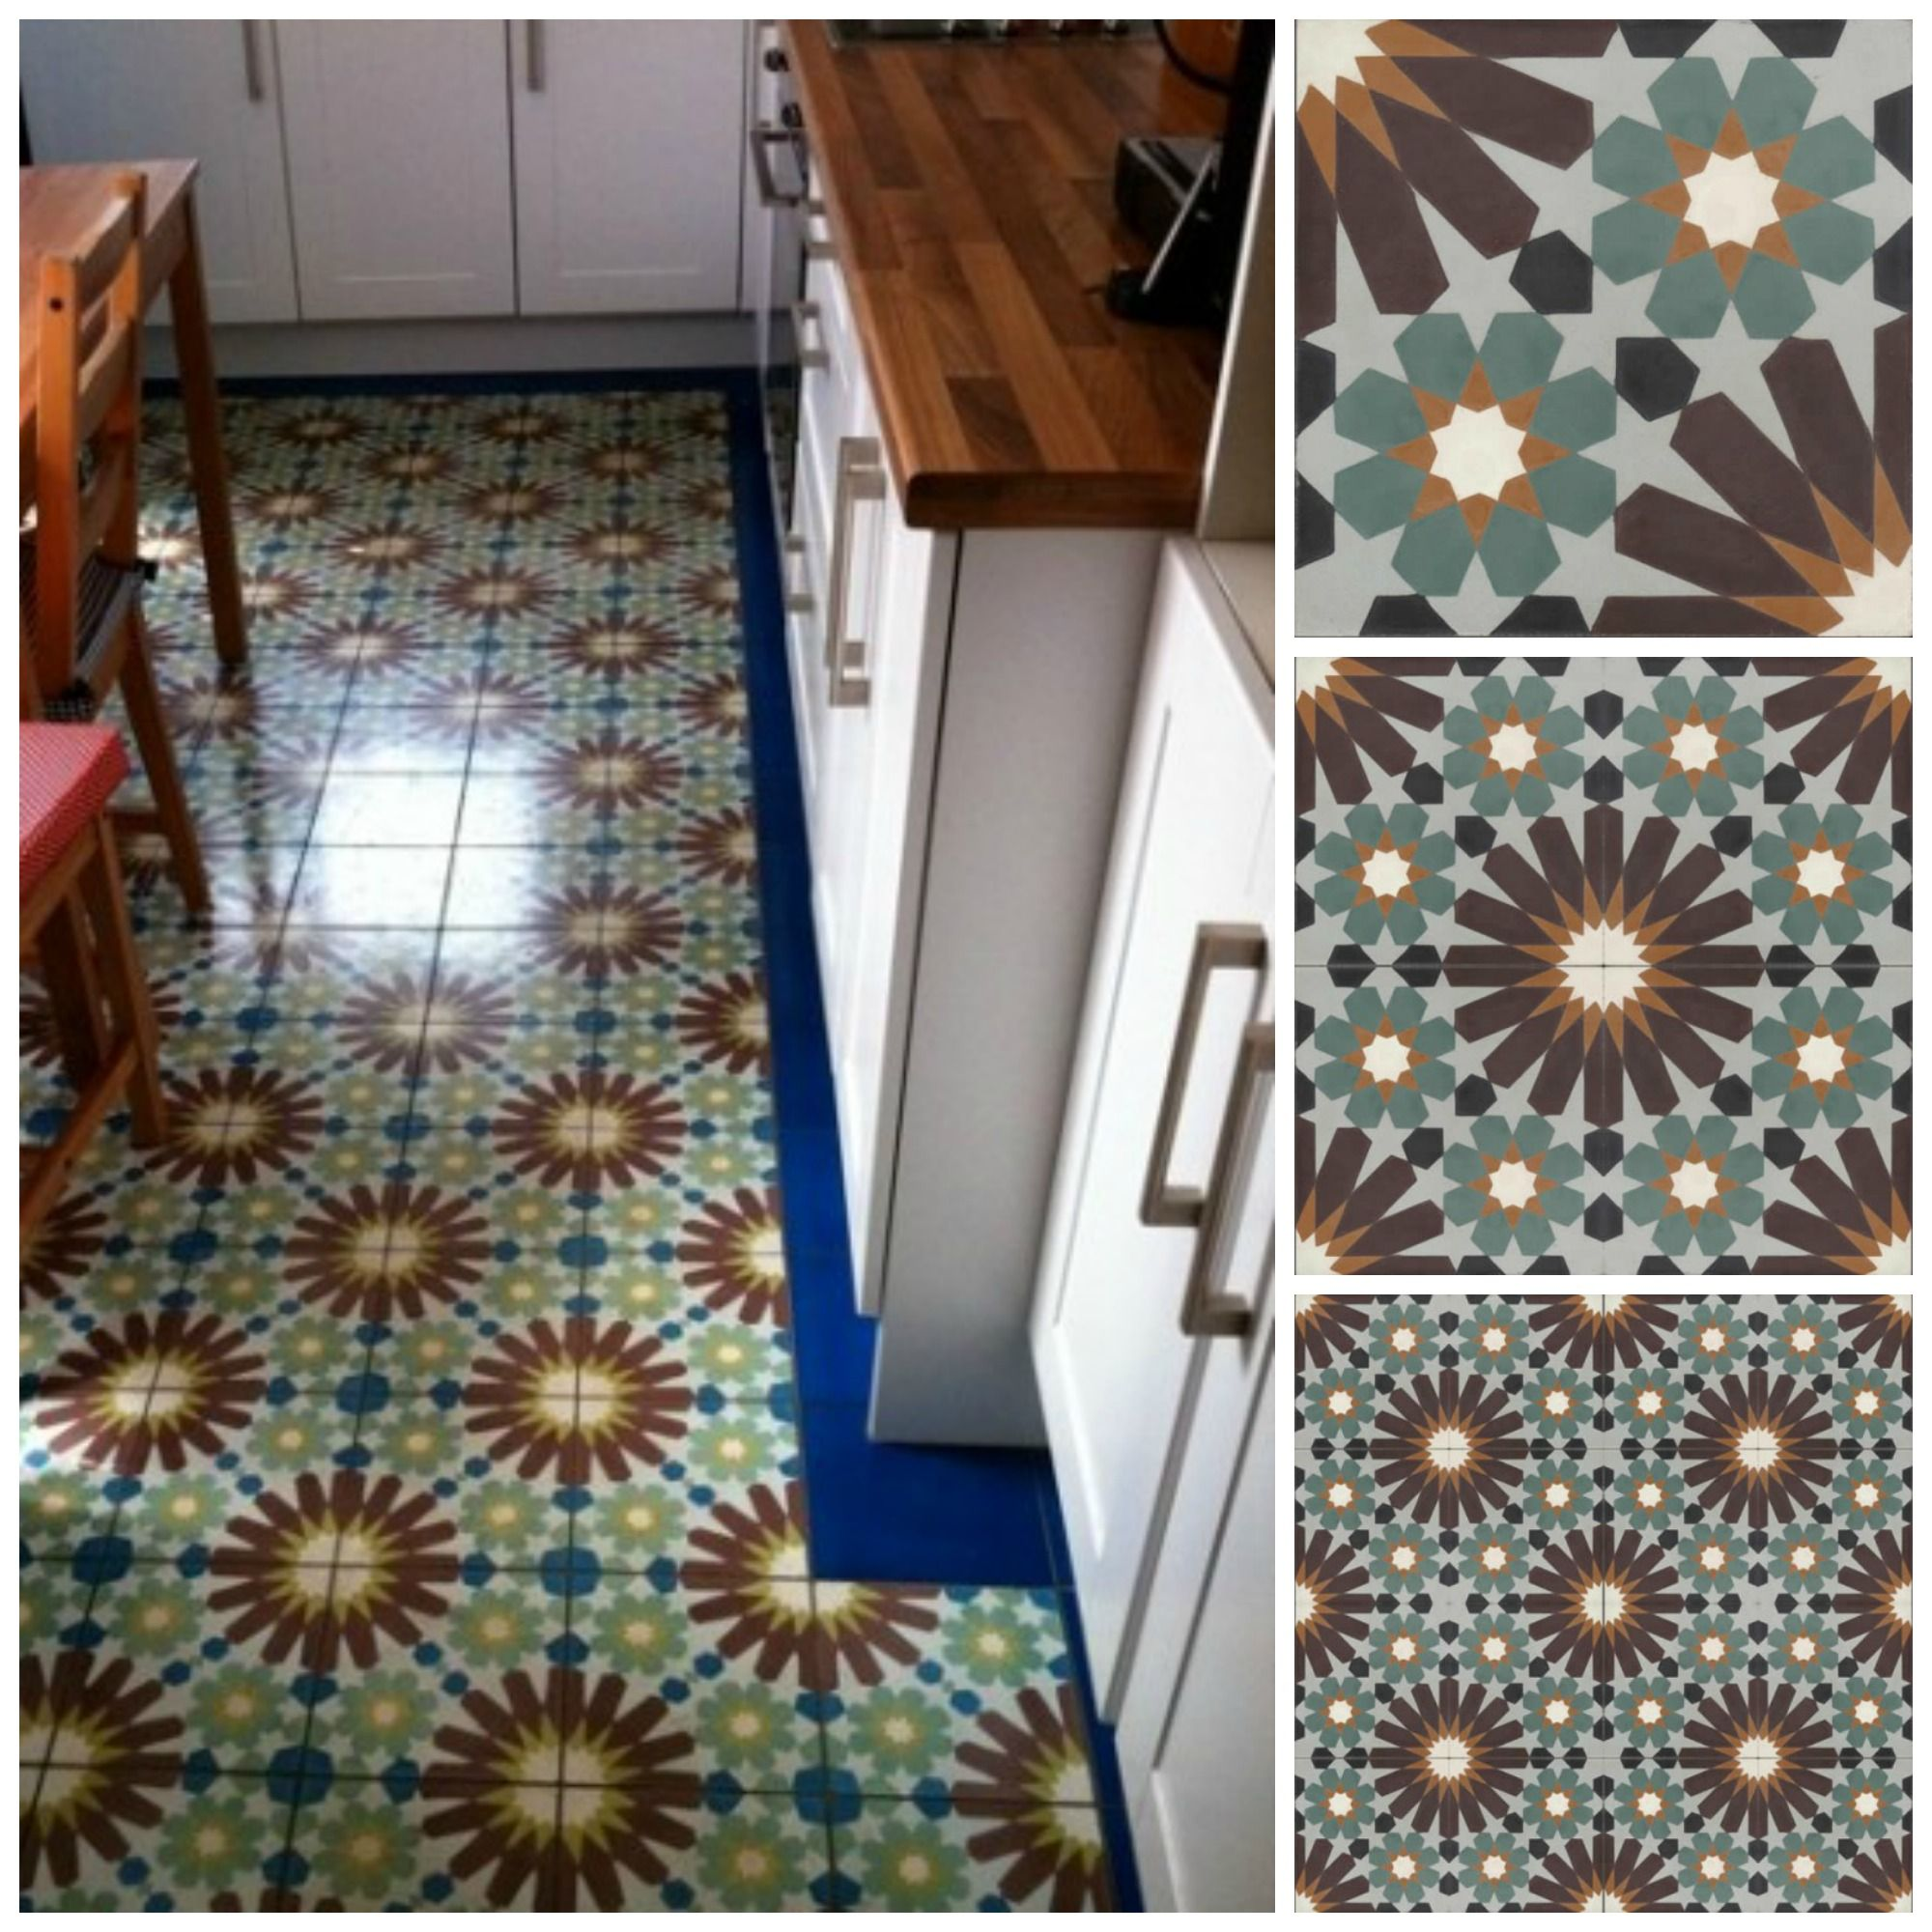 Types Of Floor Tiles For Kitchen: Pin By Best Tile Waterford On Kitchens